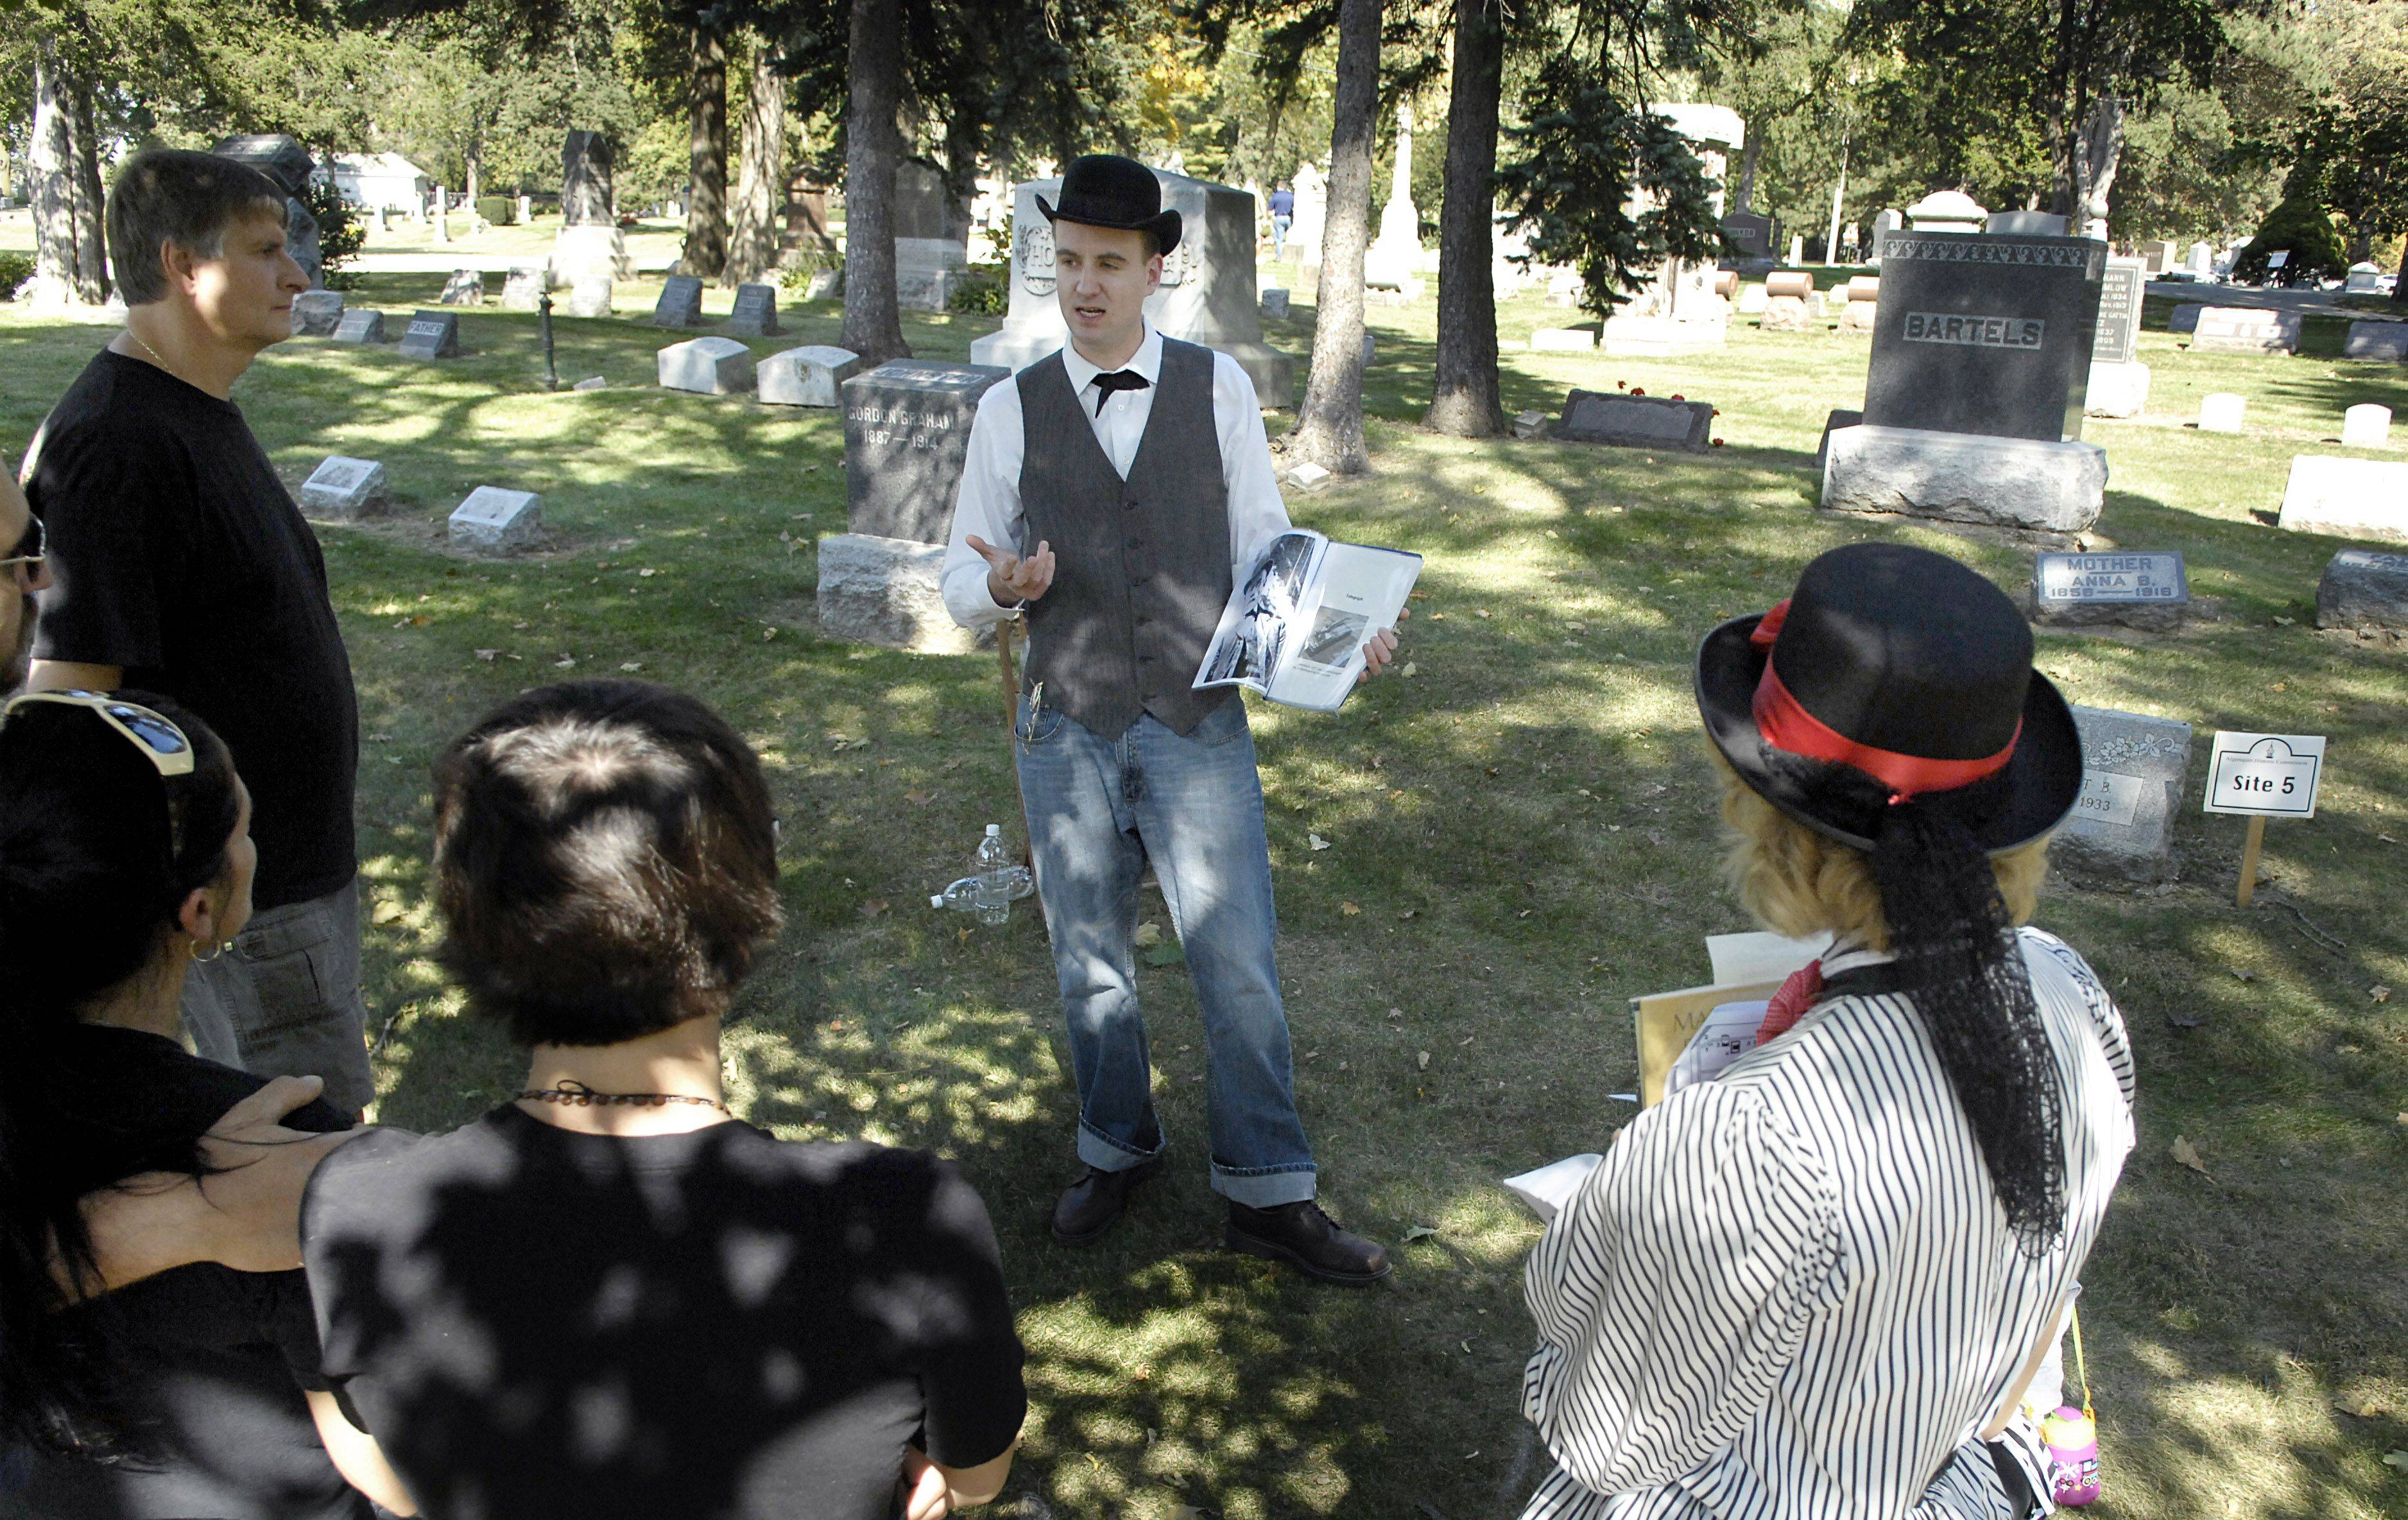 Ben Mason poses as Burnet B. Stewart during a previous cemetery walk held by the Algonquin Historic Commission. This year's cemetery walk, along with Old Time Country Harvest Day, is slated for Saturday, Oct. 8.